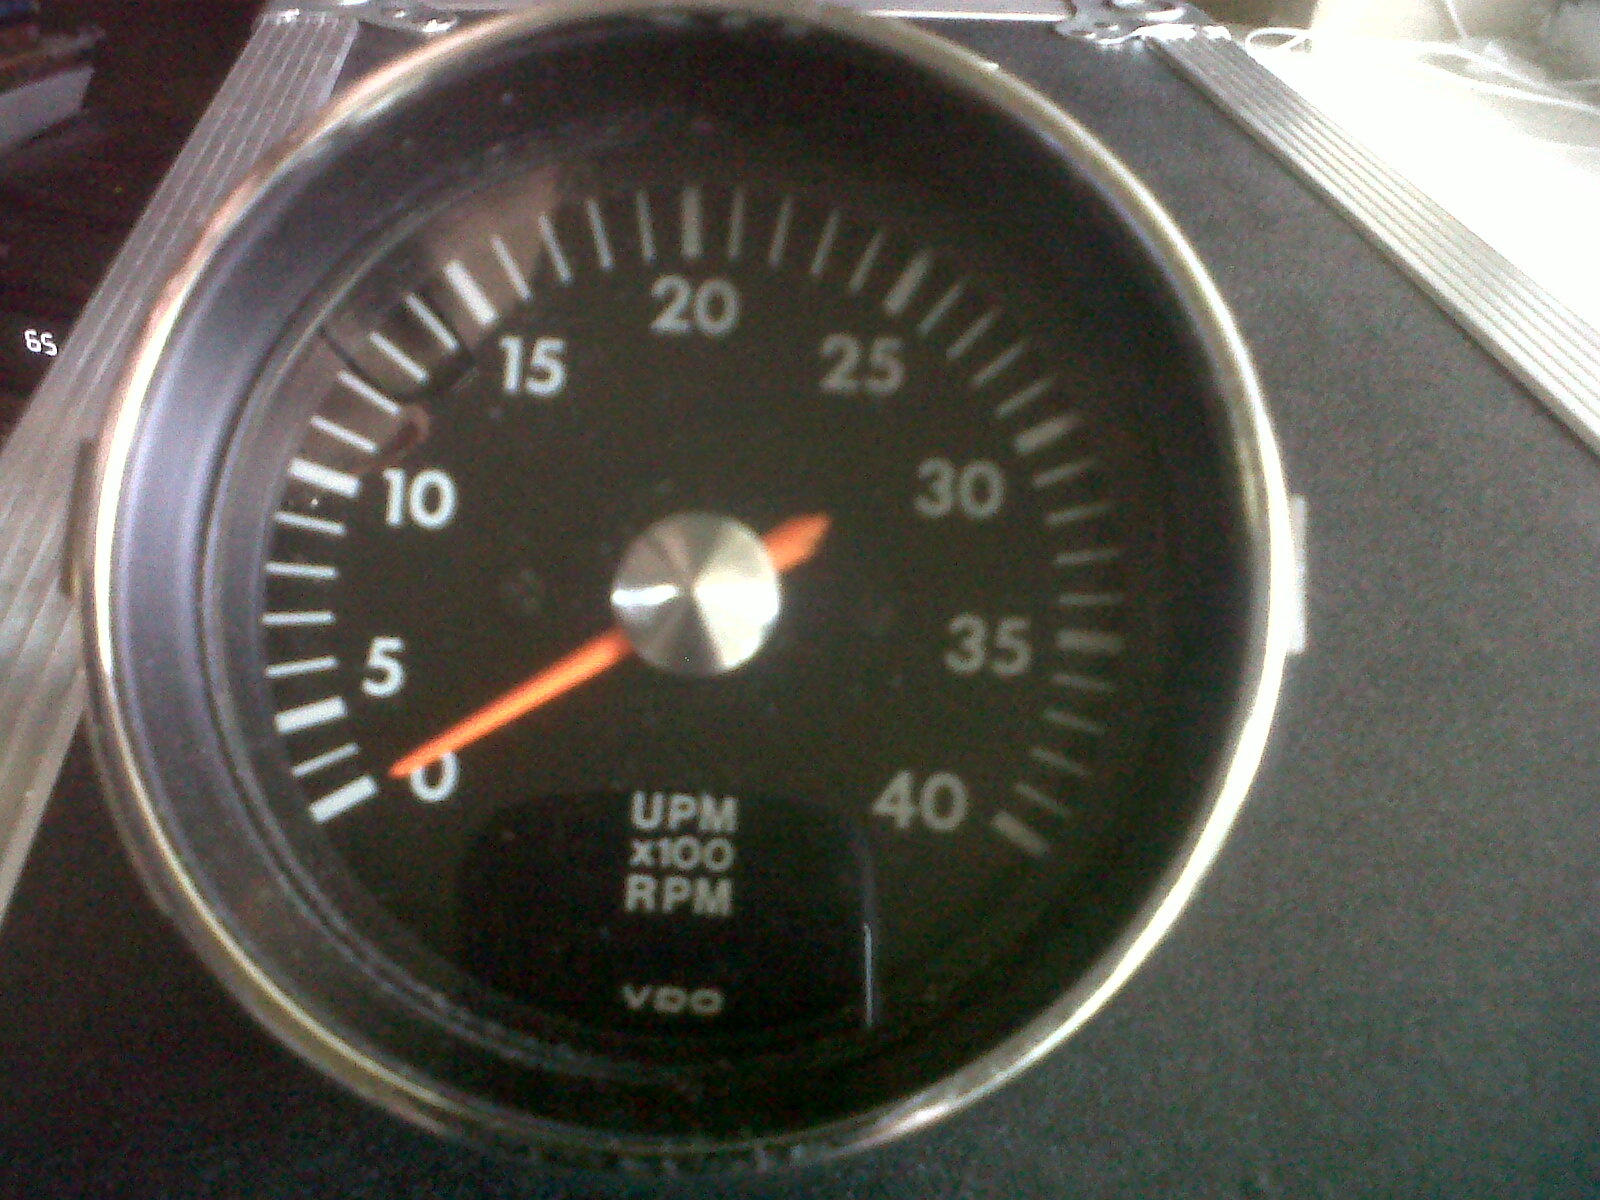 Vdo Tachometer Wiring 4000 Real Diagram Chevy Tach Thesamba Com Accessories Memorabilia Toys View Topic Rpm Rh Schematic